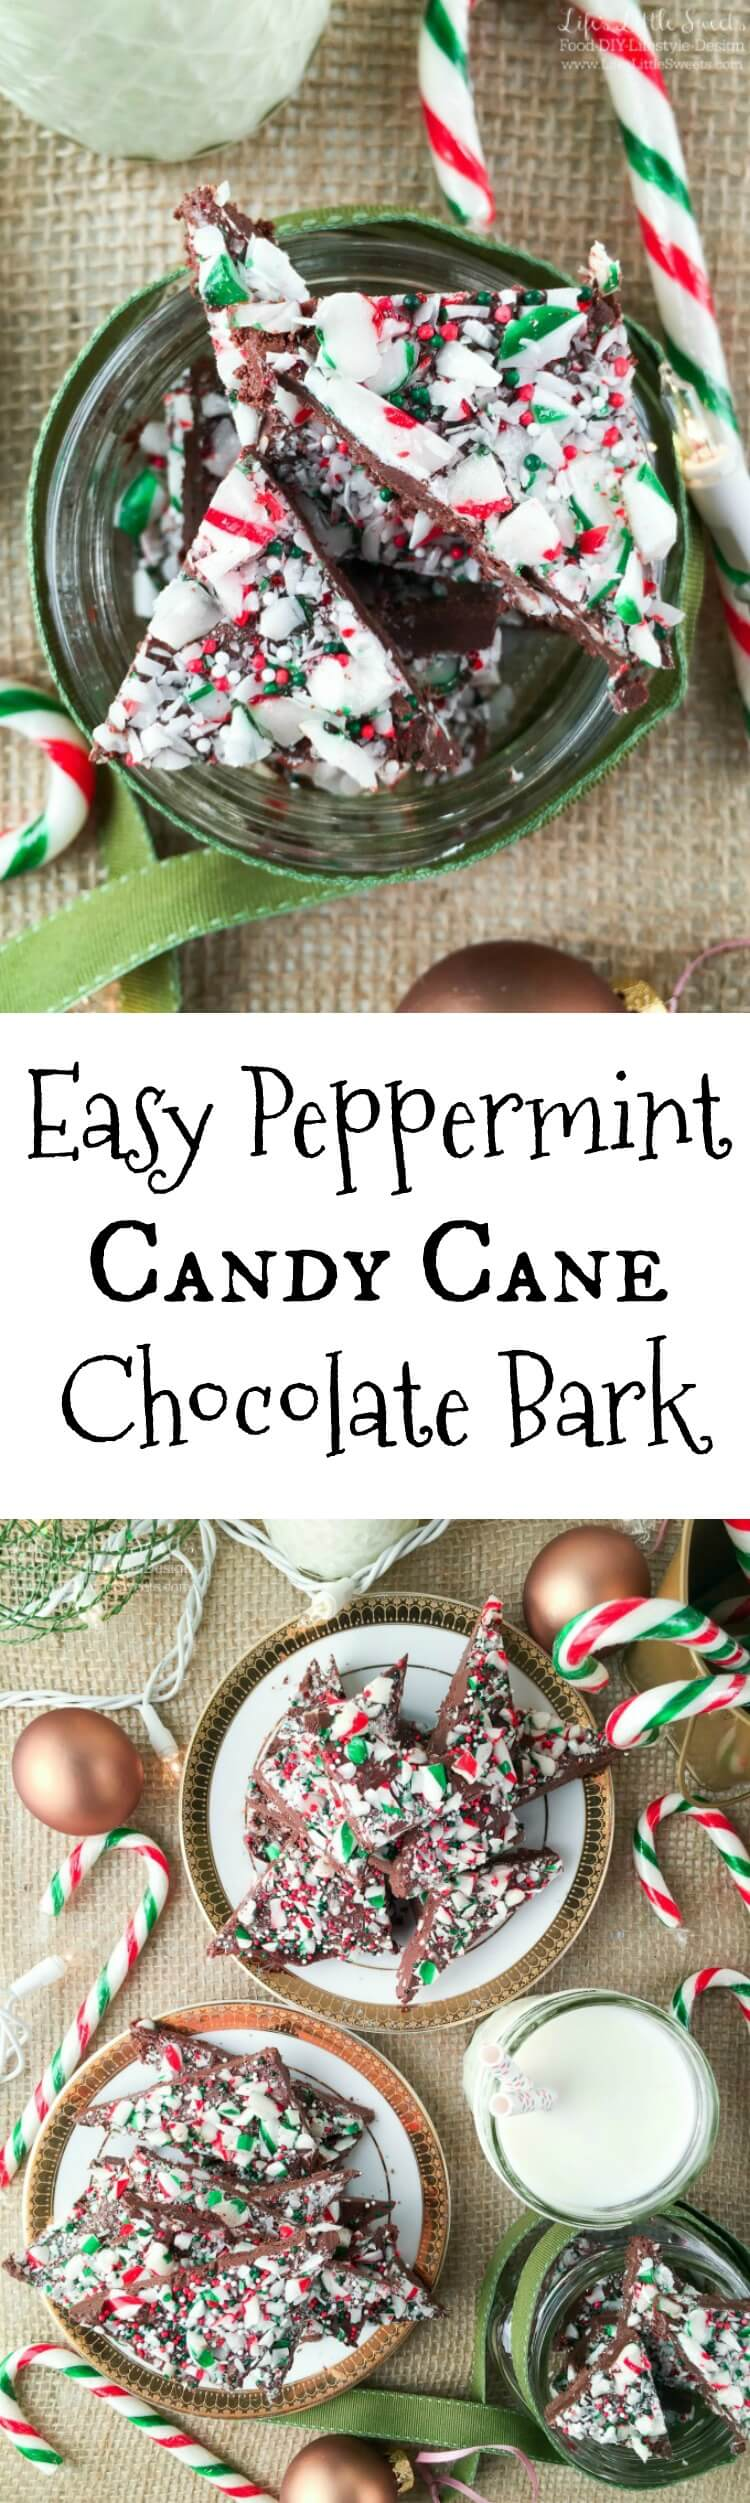 This easy to make Easy Peppermint Candy Cane Bark recipe is a sweet and refreshing treat that only takes minutes to prepare . It's perfect as a holiday stocking stuffer, great to give as a gift in jars and make for yourself too!